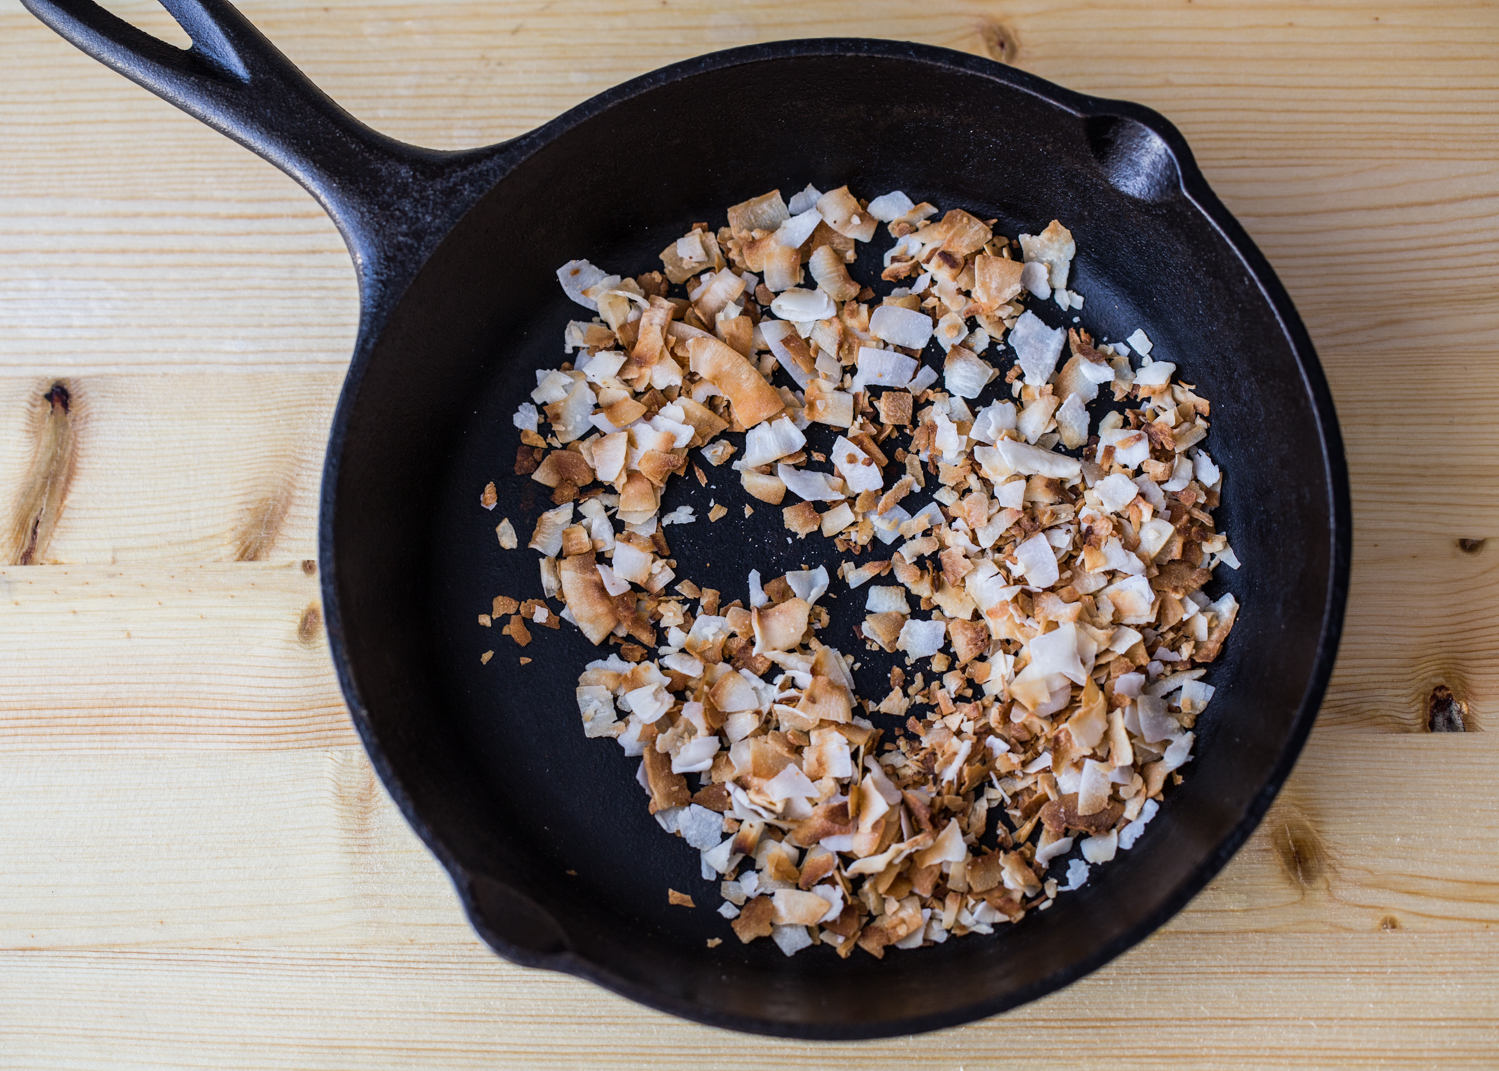 Chocolate Coconut Granola with lots of toasted coconut is a sweet, breakfast treat